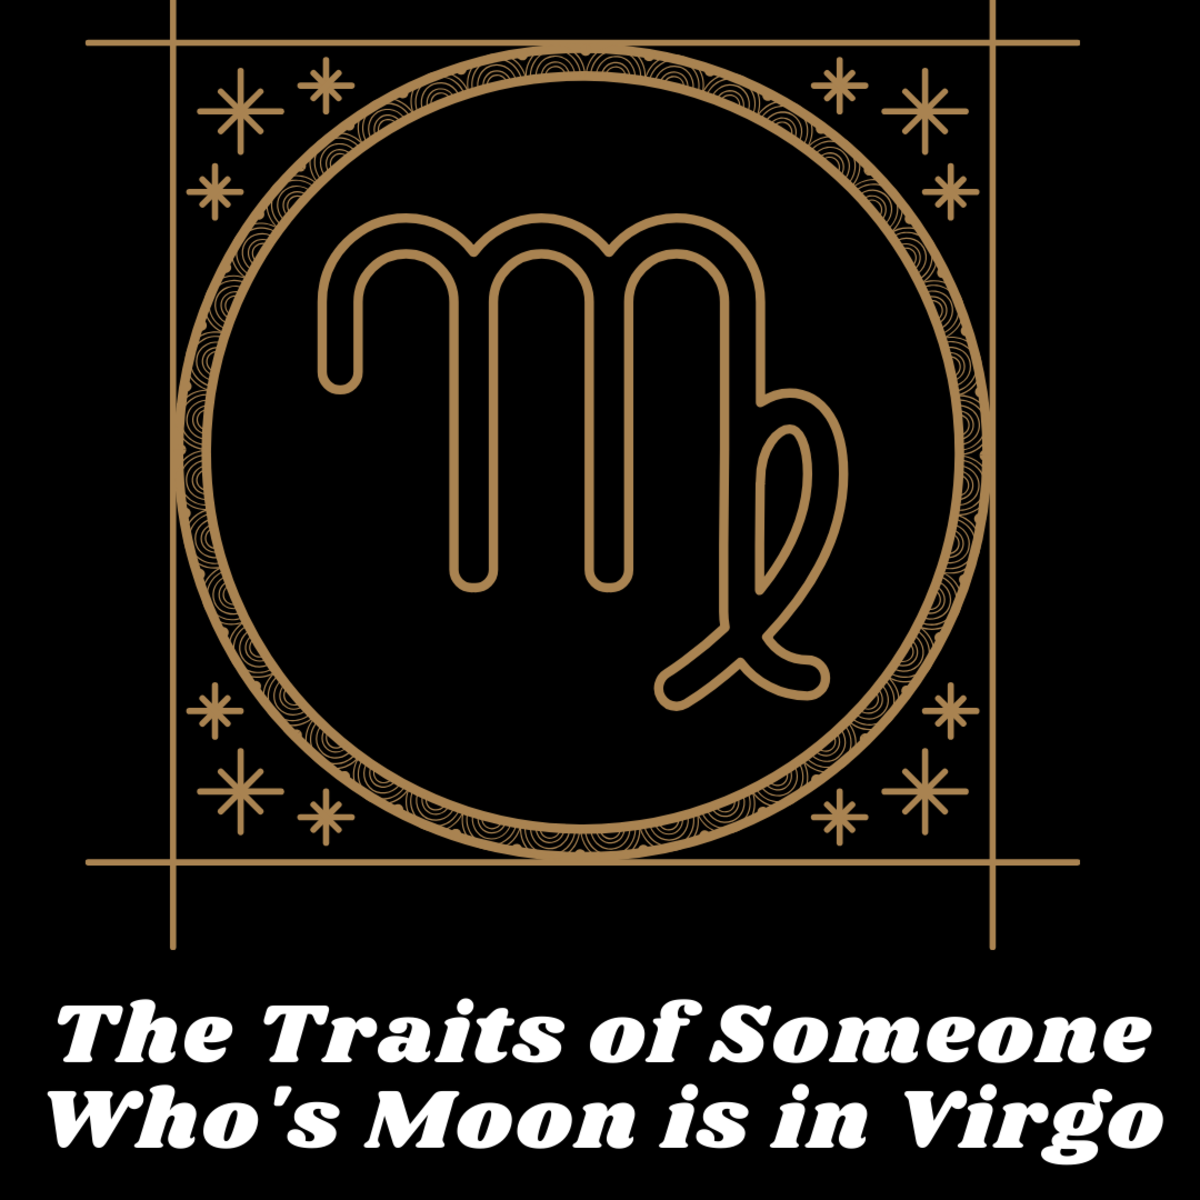 The traits of someone who's moon is in virgo.